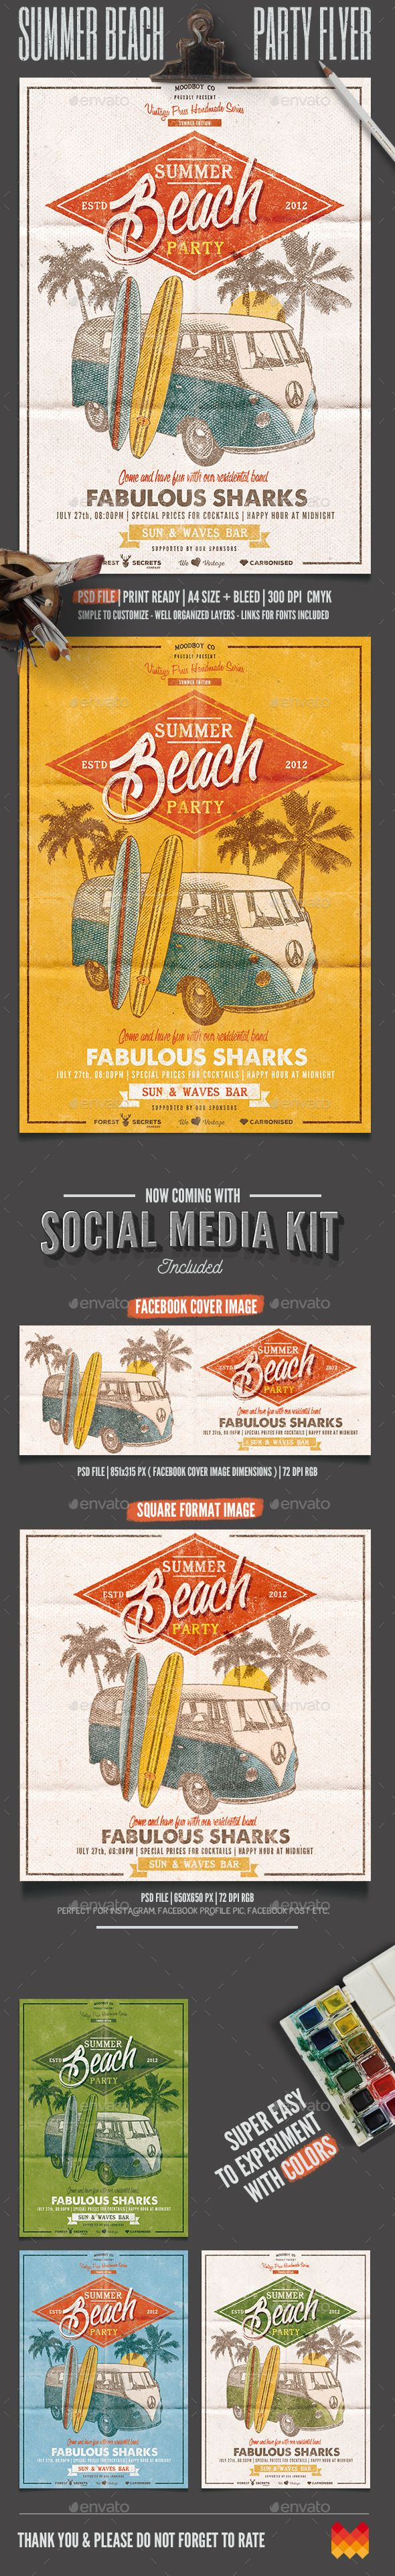 Summer Beach Party Flyer/Poster Template #design Download: http://graphicriver.net/item/summer-beach-party-flyerposter/12057652?ref=ksioks